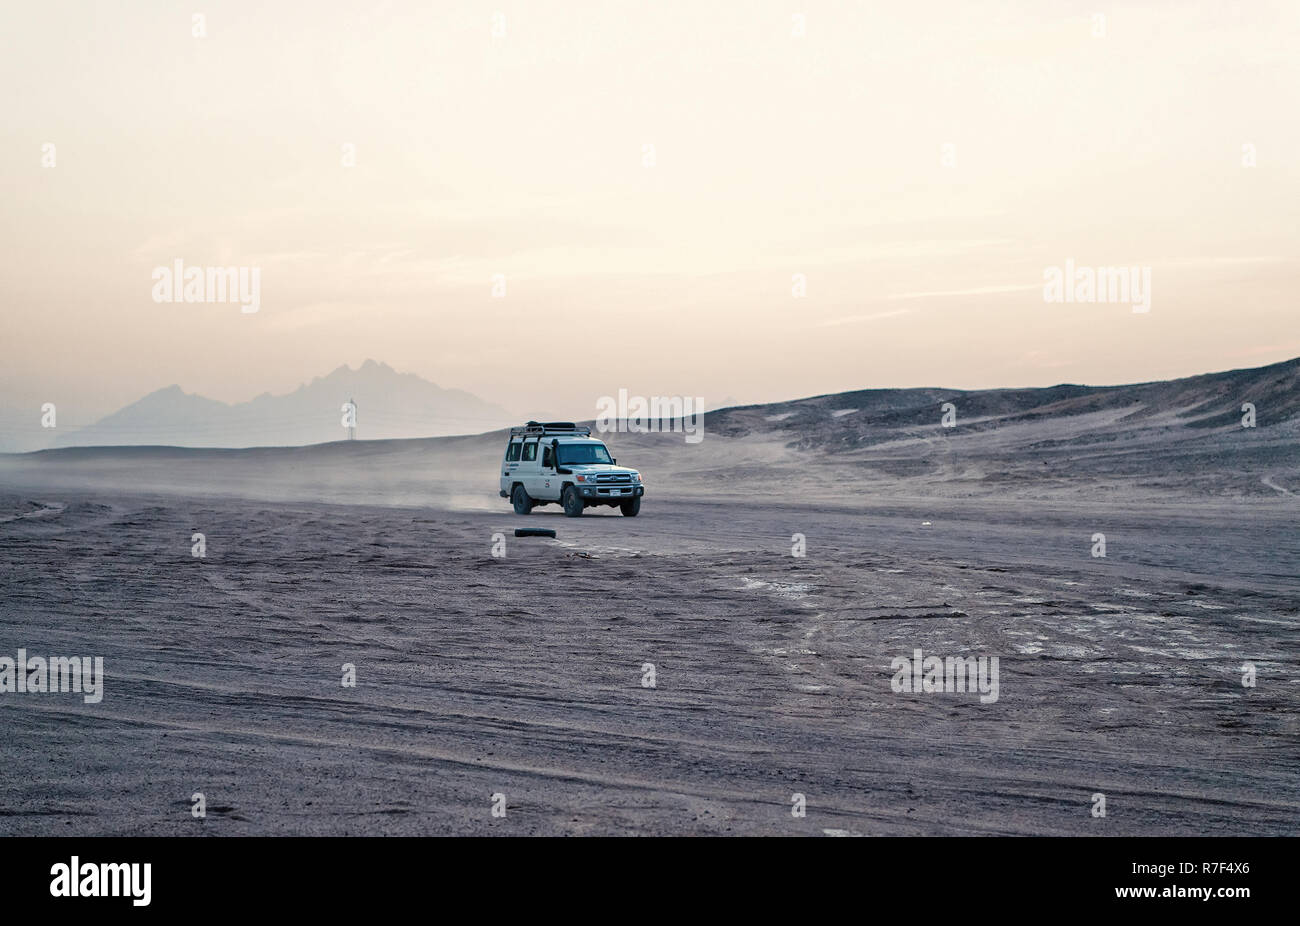 Hurghada, Egypt - February 26, 2017: car or jeep, offroad vehicle, driving in desert, sand dunes surface on white sky background. Safari and adventure. Travel, travelling. Arid landscape Wanderlust - Stock Image